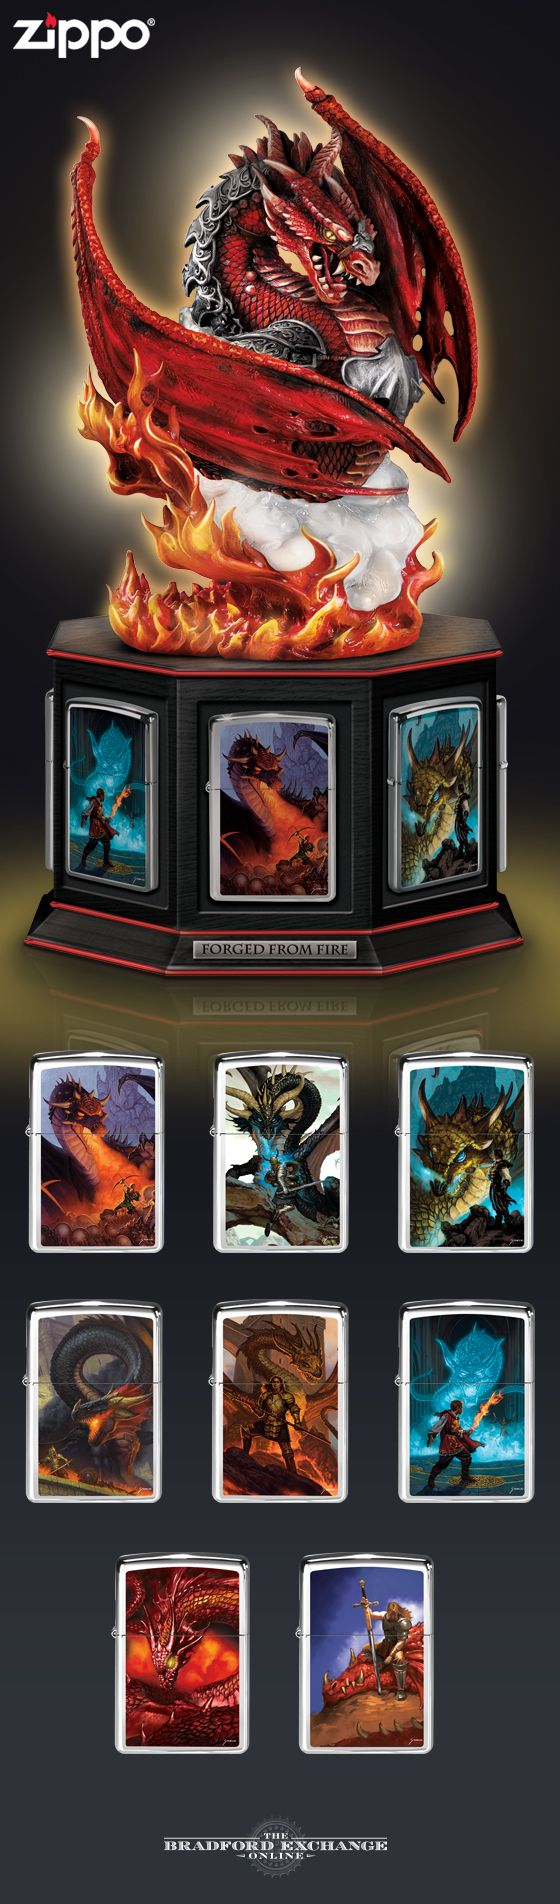 Ignite a tribute to the potent power of dragons with the Forged From Fire Zippo Lighter Collection. Eight windproof Zippo lighters, showcasing Matthew Stawicki's intoxicating dragon visions, fit perfectly into the included handsome display. The display even lights up and features a fierce sculptural dragon on top. Hurry - the edition is limited to just 10,000 complete collections.